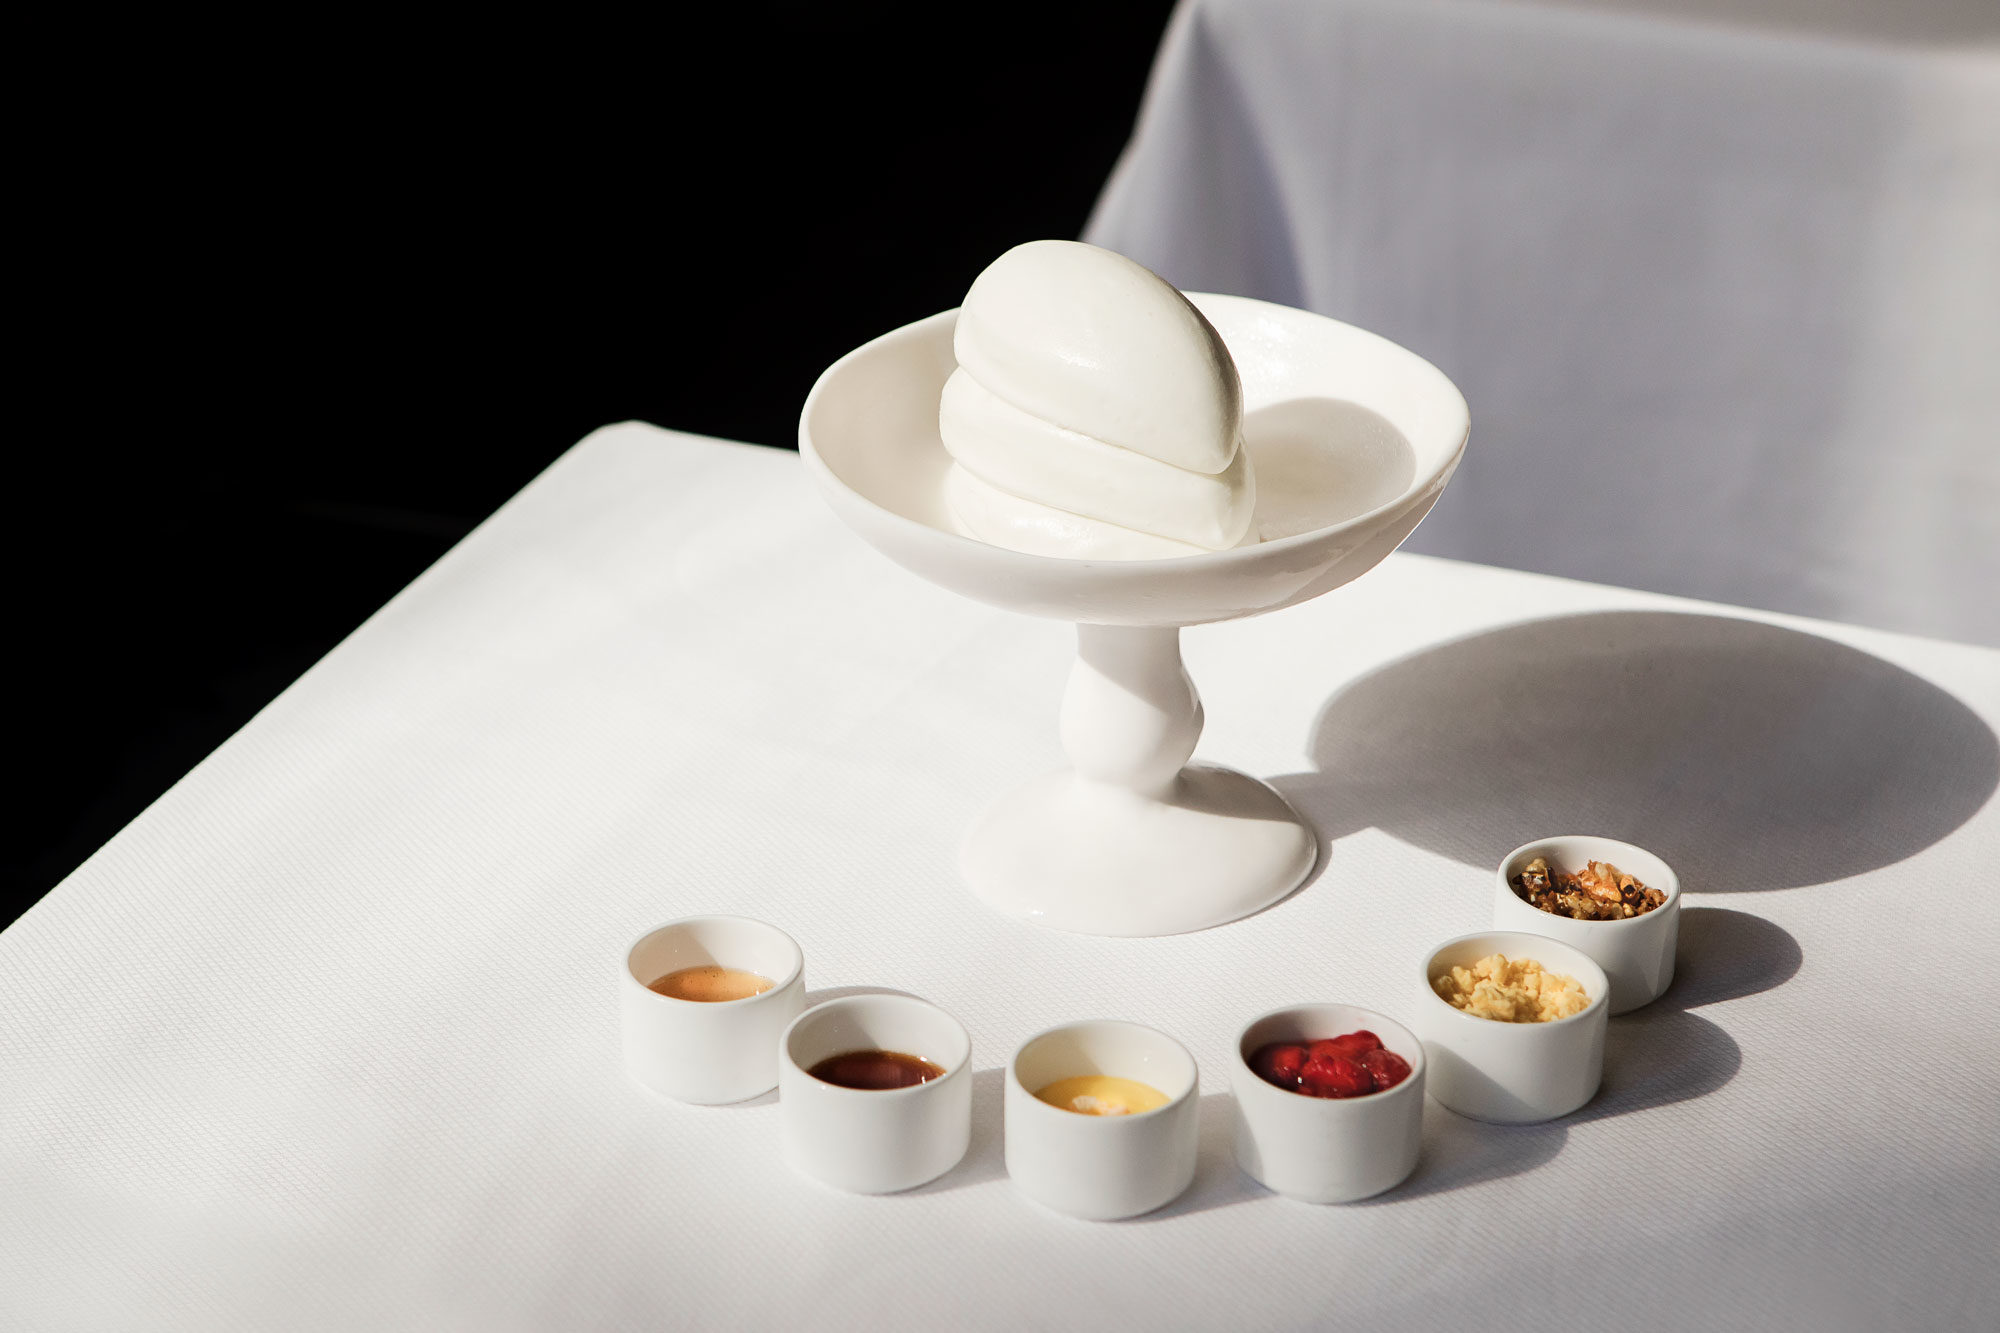 Article2-Frozen-Yogurt-The-Pool-The-Grill-NYC-Dessert-Pastry-Chef-Stephanie-Prida